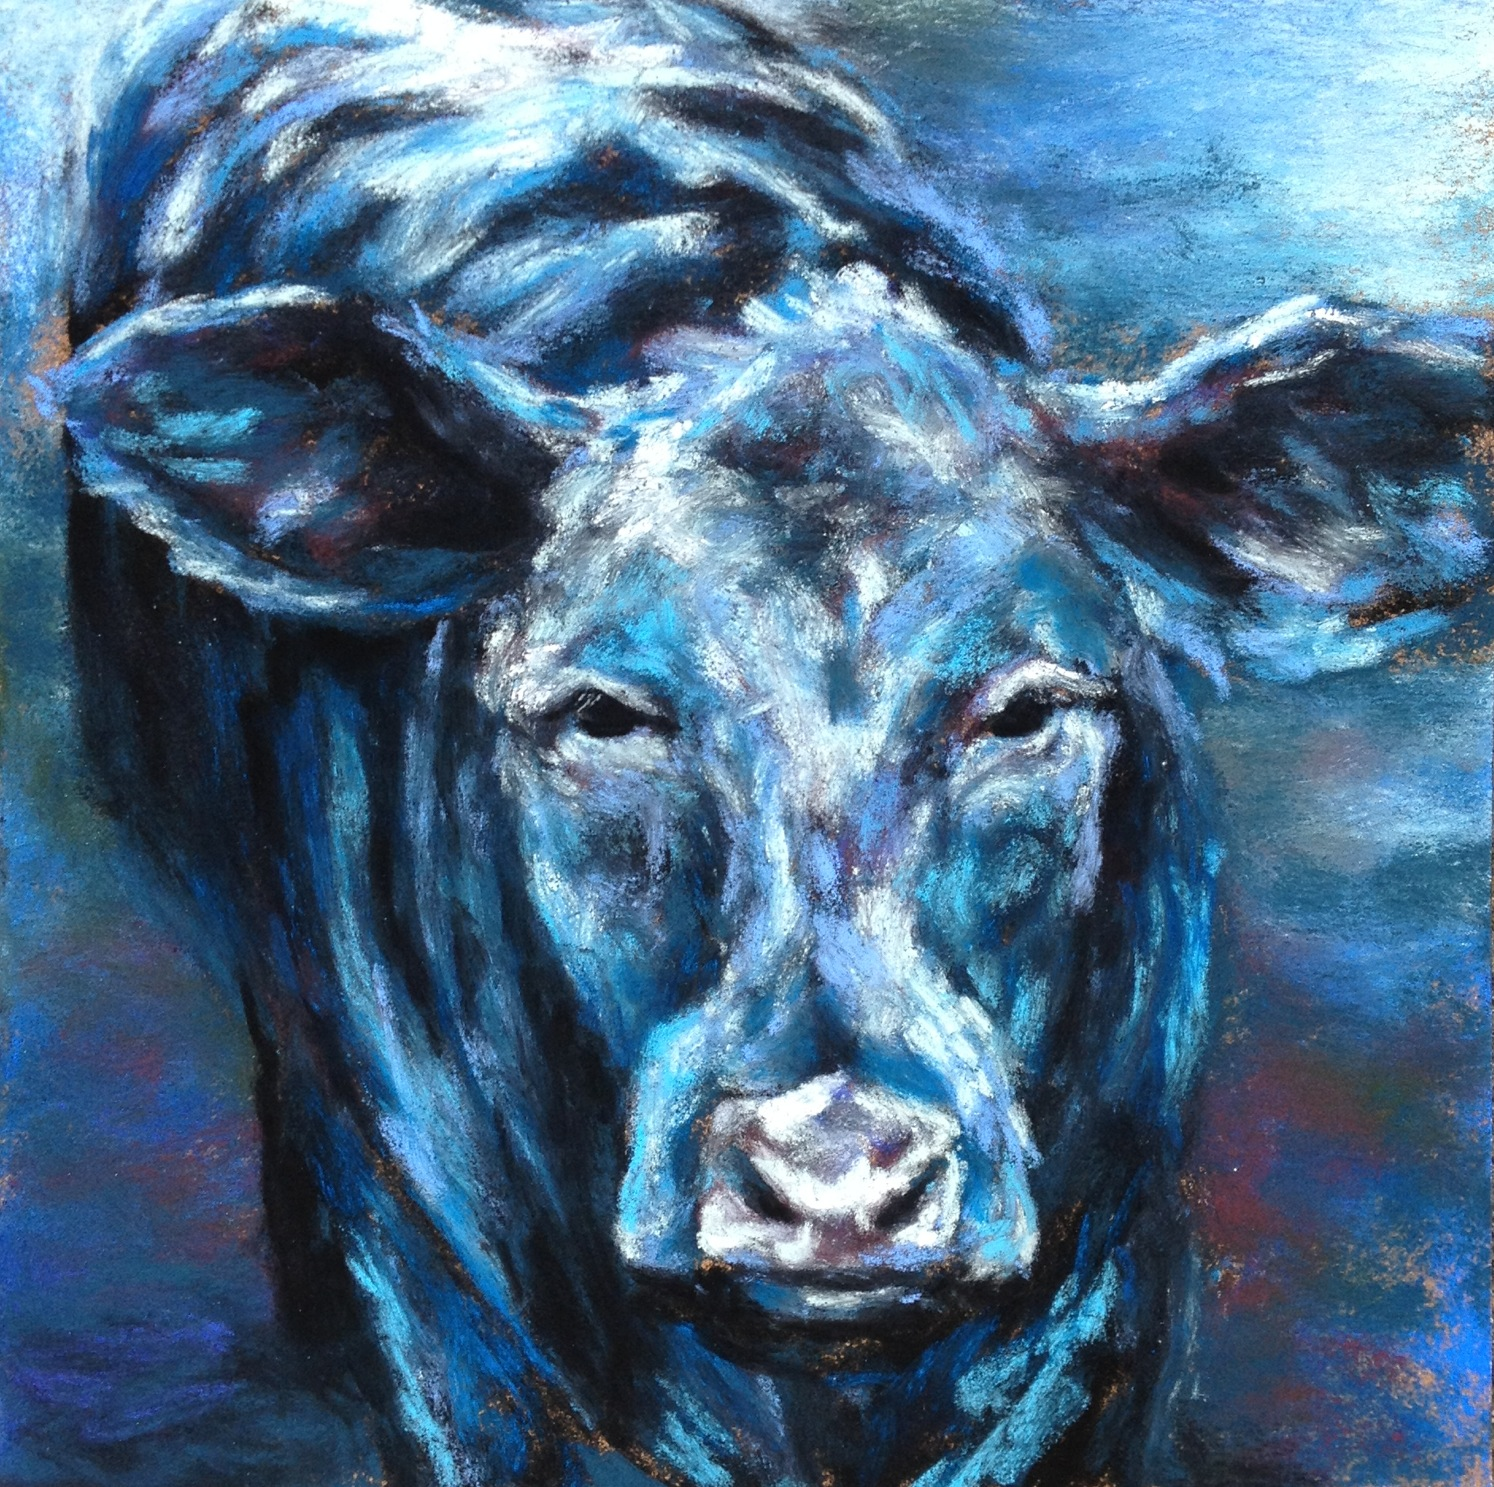 Big Blue, 8x8 pastel on card